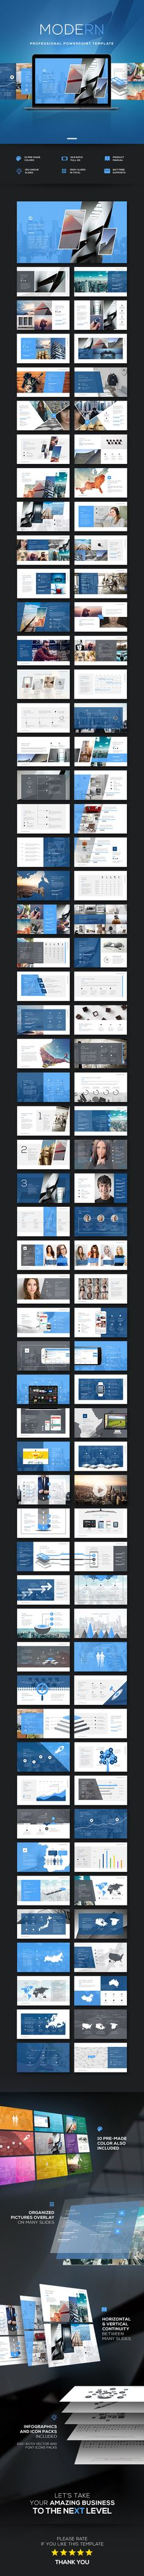 Modern PowerPoint — Powerpoint PPTX #enterprise #1920x1080 • Download ➝ https://graphicriver.net/item/modern-powerpoint/19390795?ref=pxcr